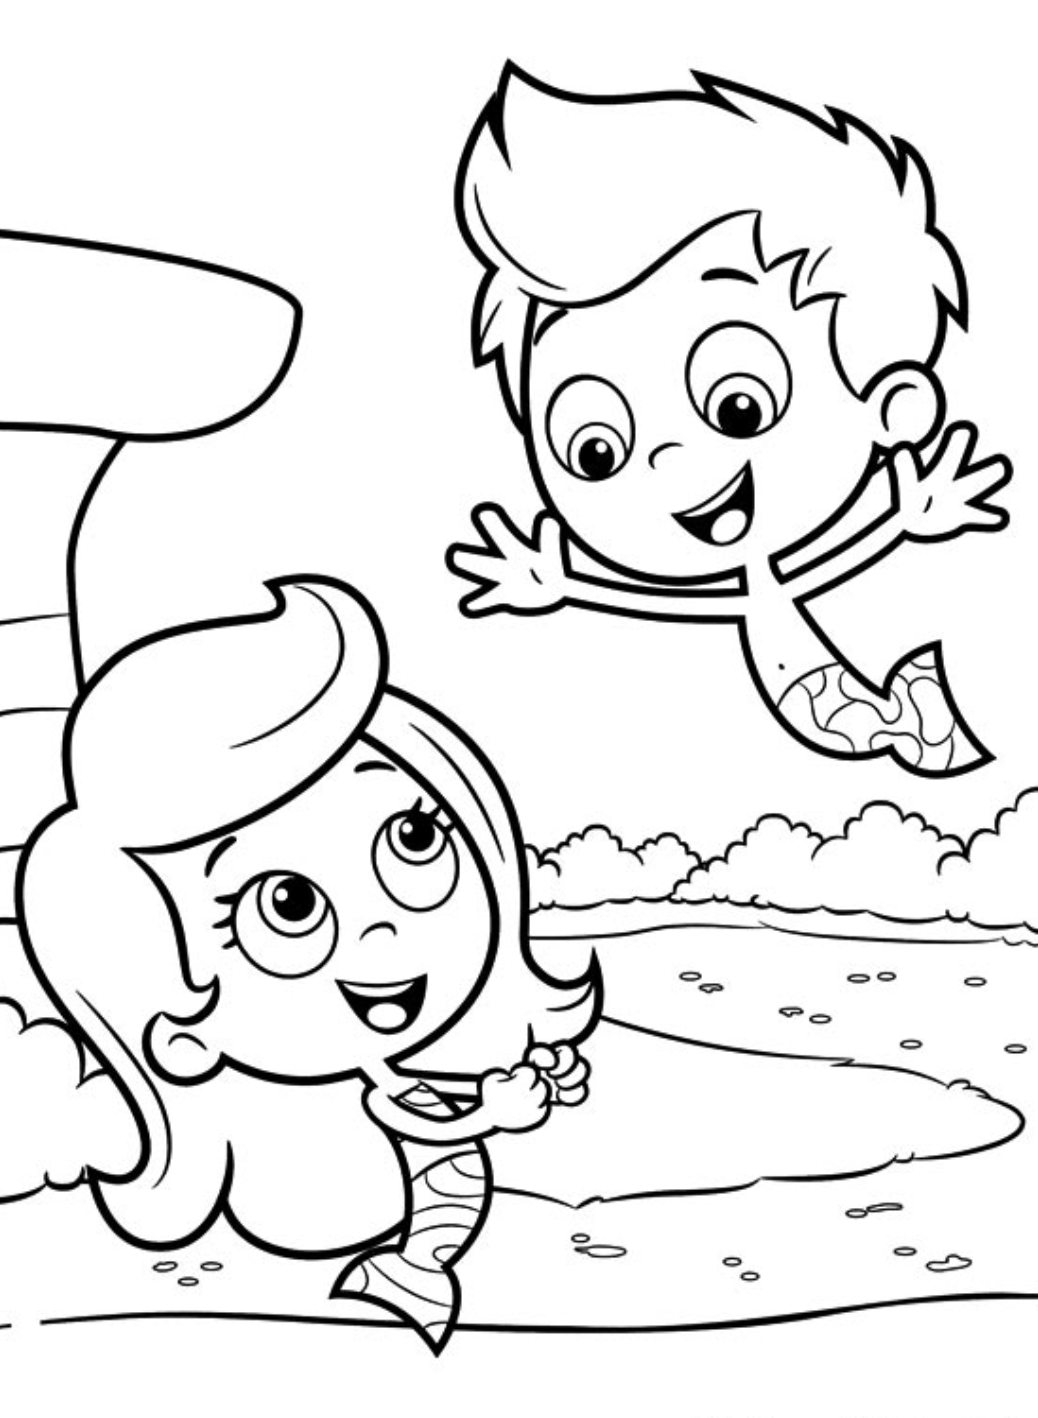 bubble guppies coloring page - underwater mermaid school bubble guppies 20 bubble guppies